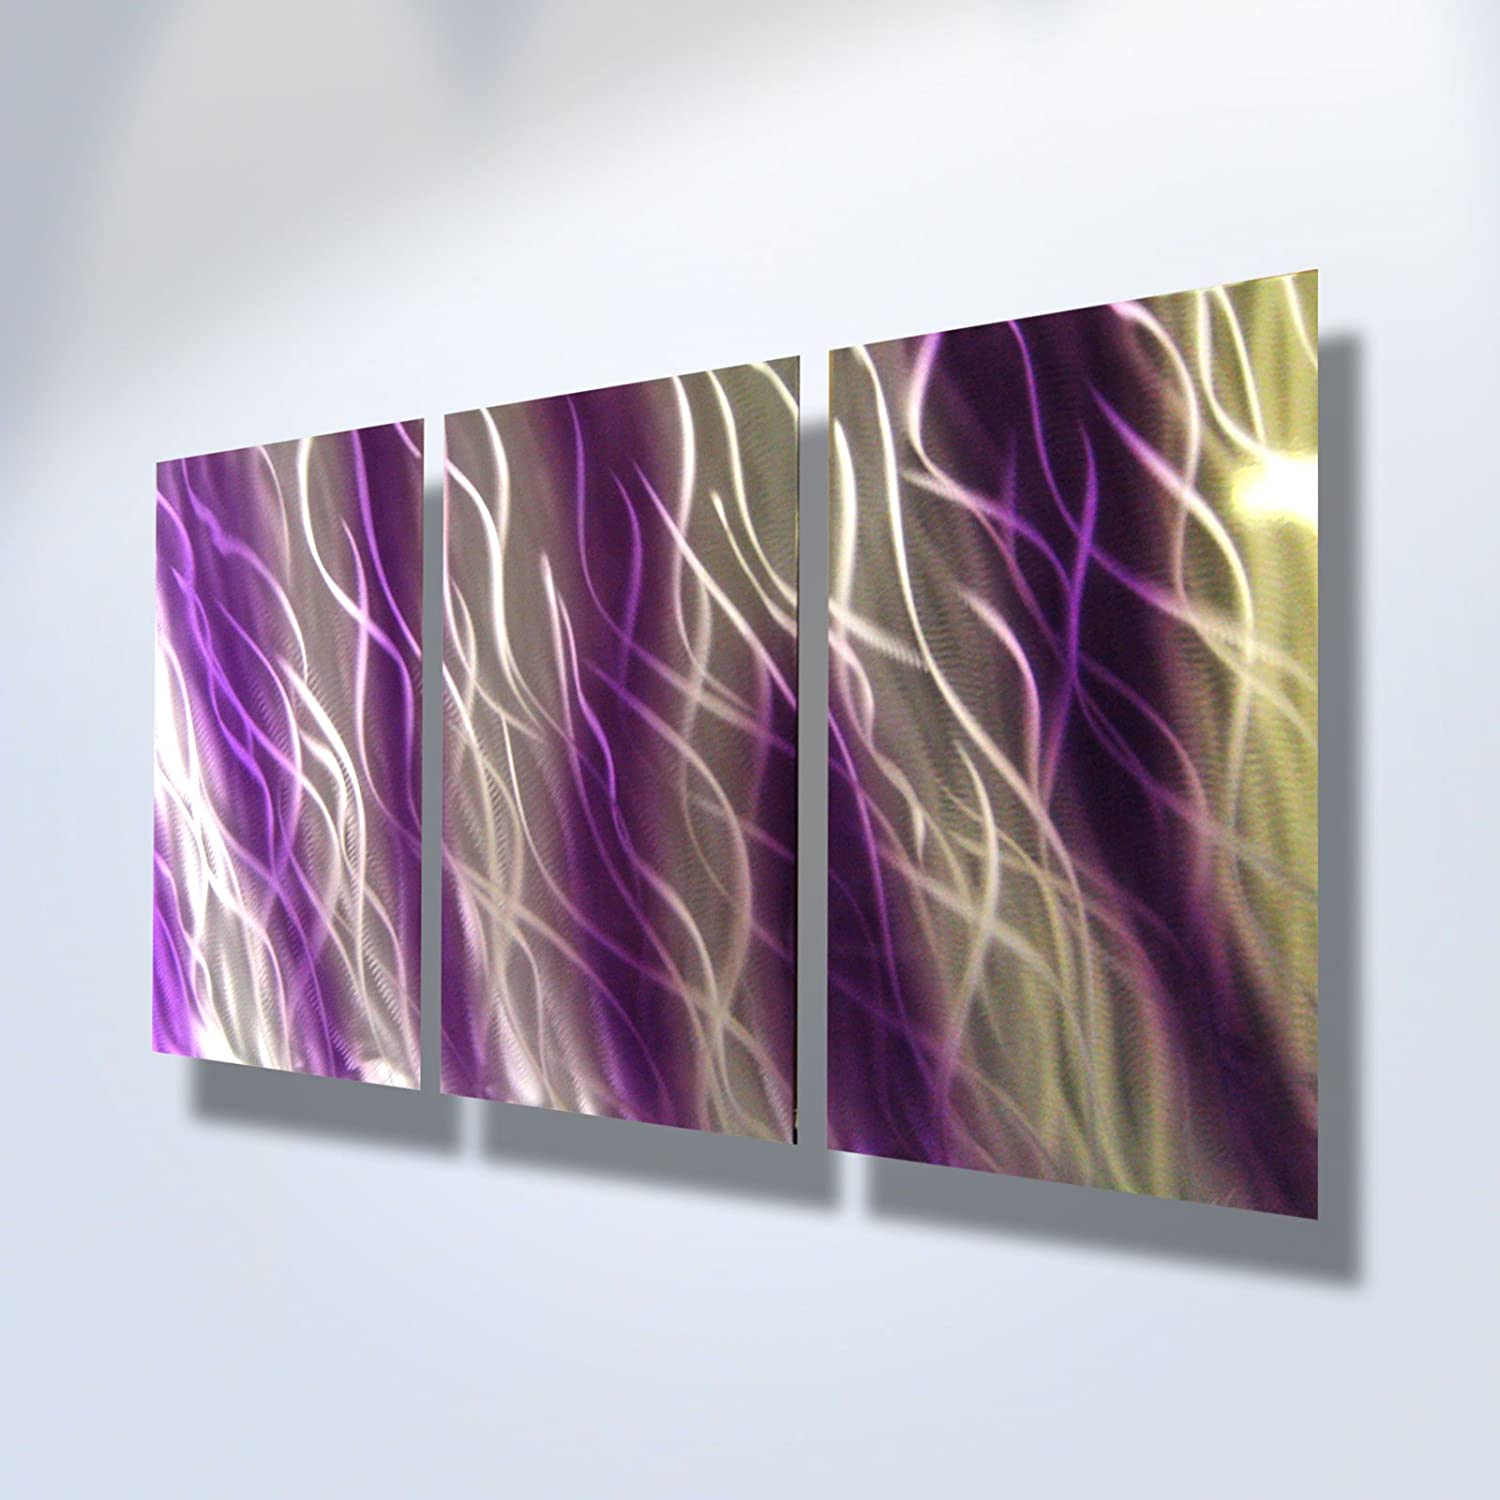 Amazon.com Metal Wall Art Modern Home Decor Abstract Artwork Sculpture- Purple Reef by Miles Shay Home u0026 Kitchen & Amazon.com: Metal Wall Art Modern Home Decor Abstract Artwork ...